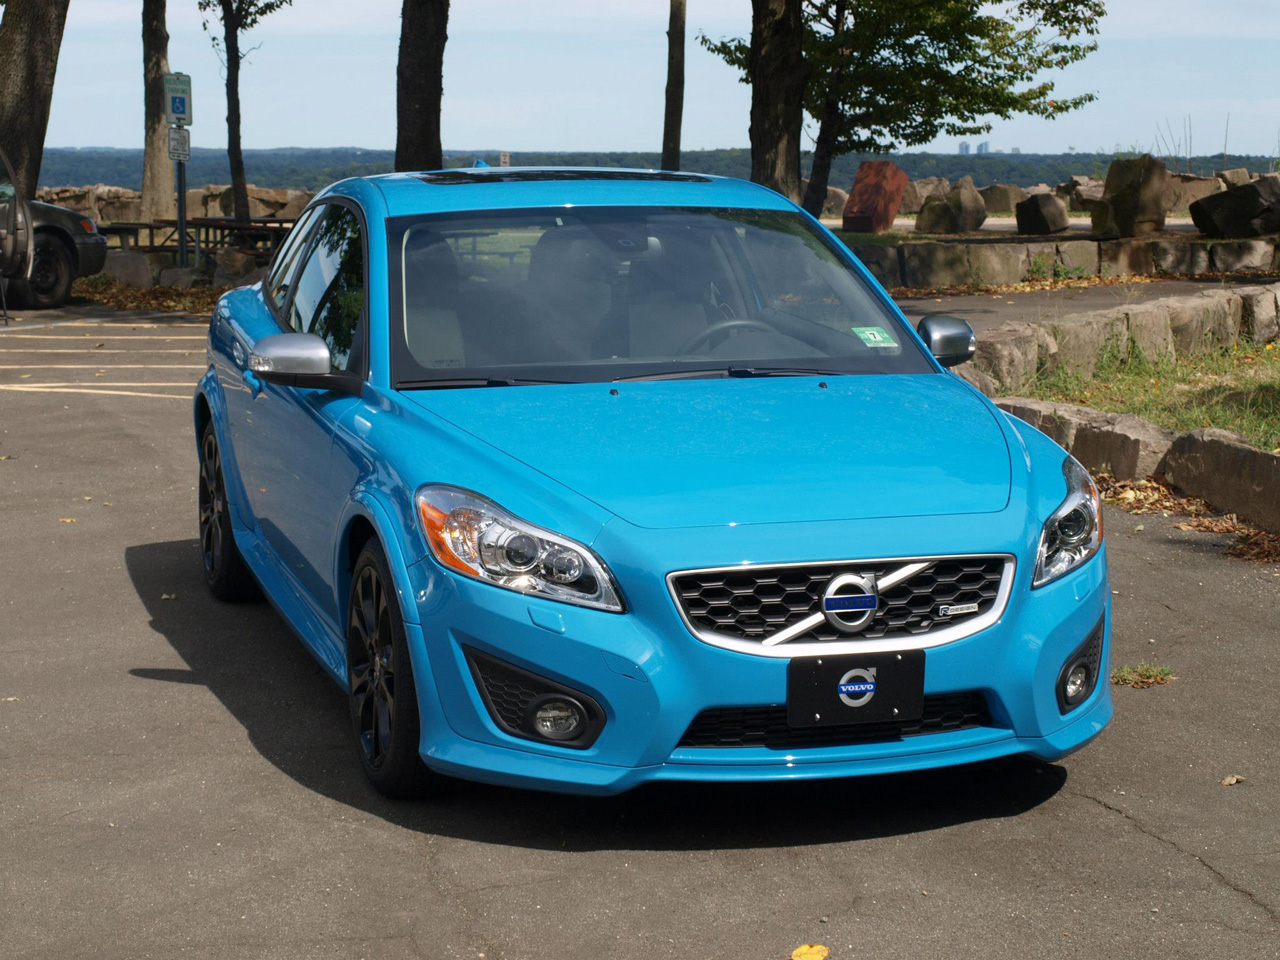 Volvo C30 For Sale >> 2013 Volvo C30 Polestar Limited Edition heads to U.S ...